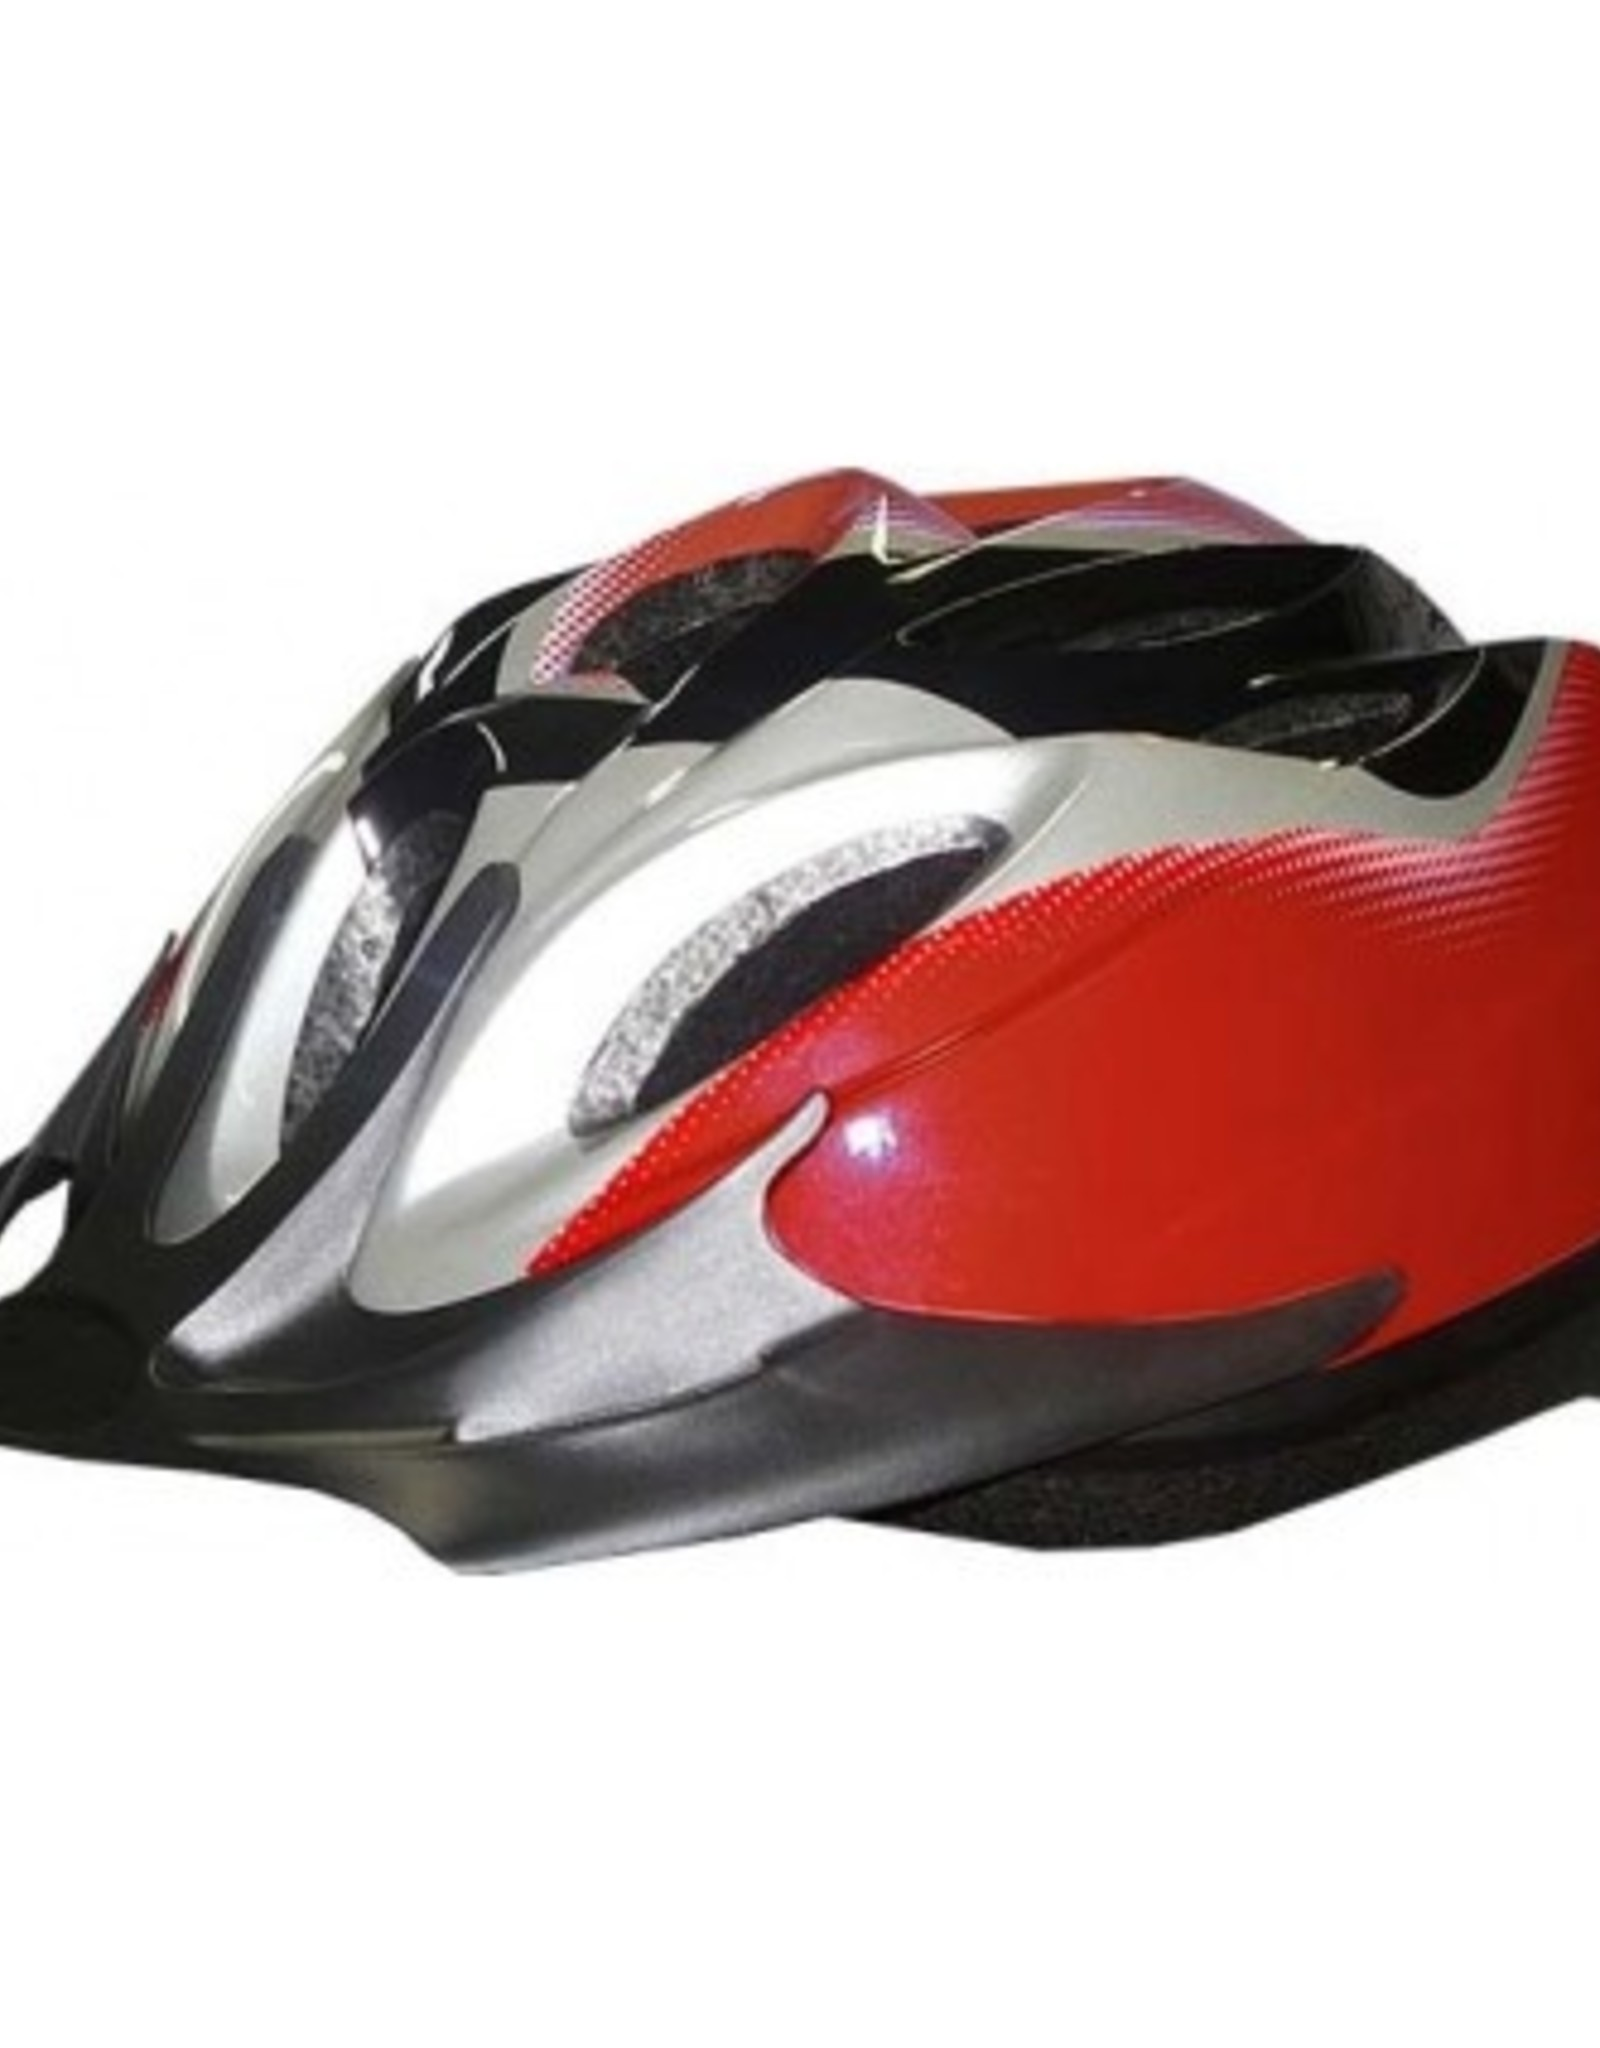 Helmets R Us Supreme Bike Helmet